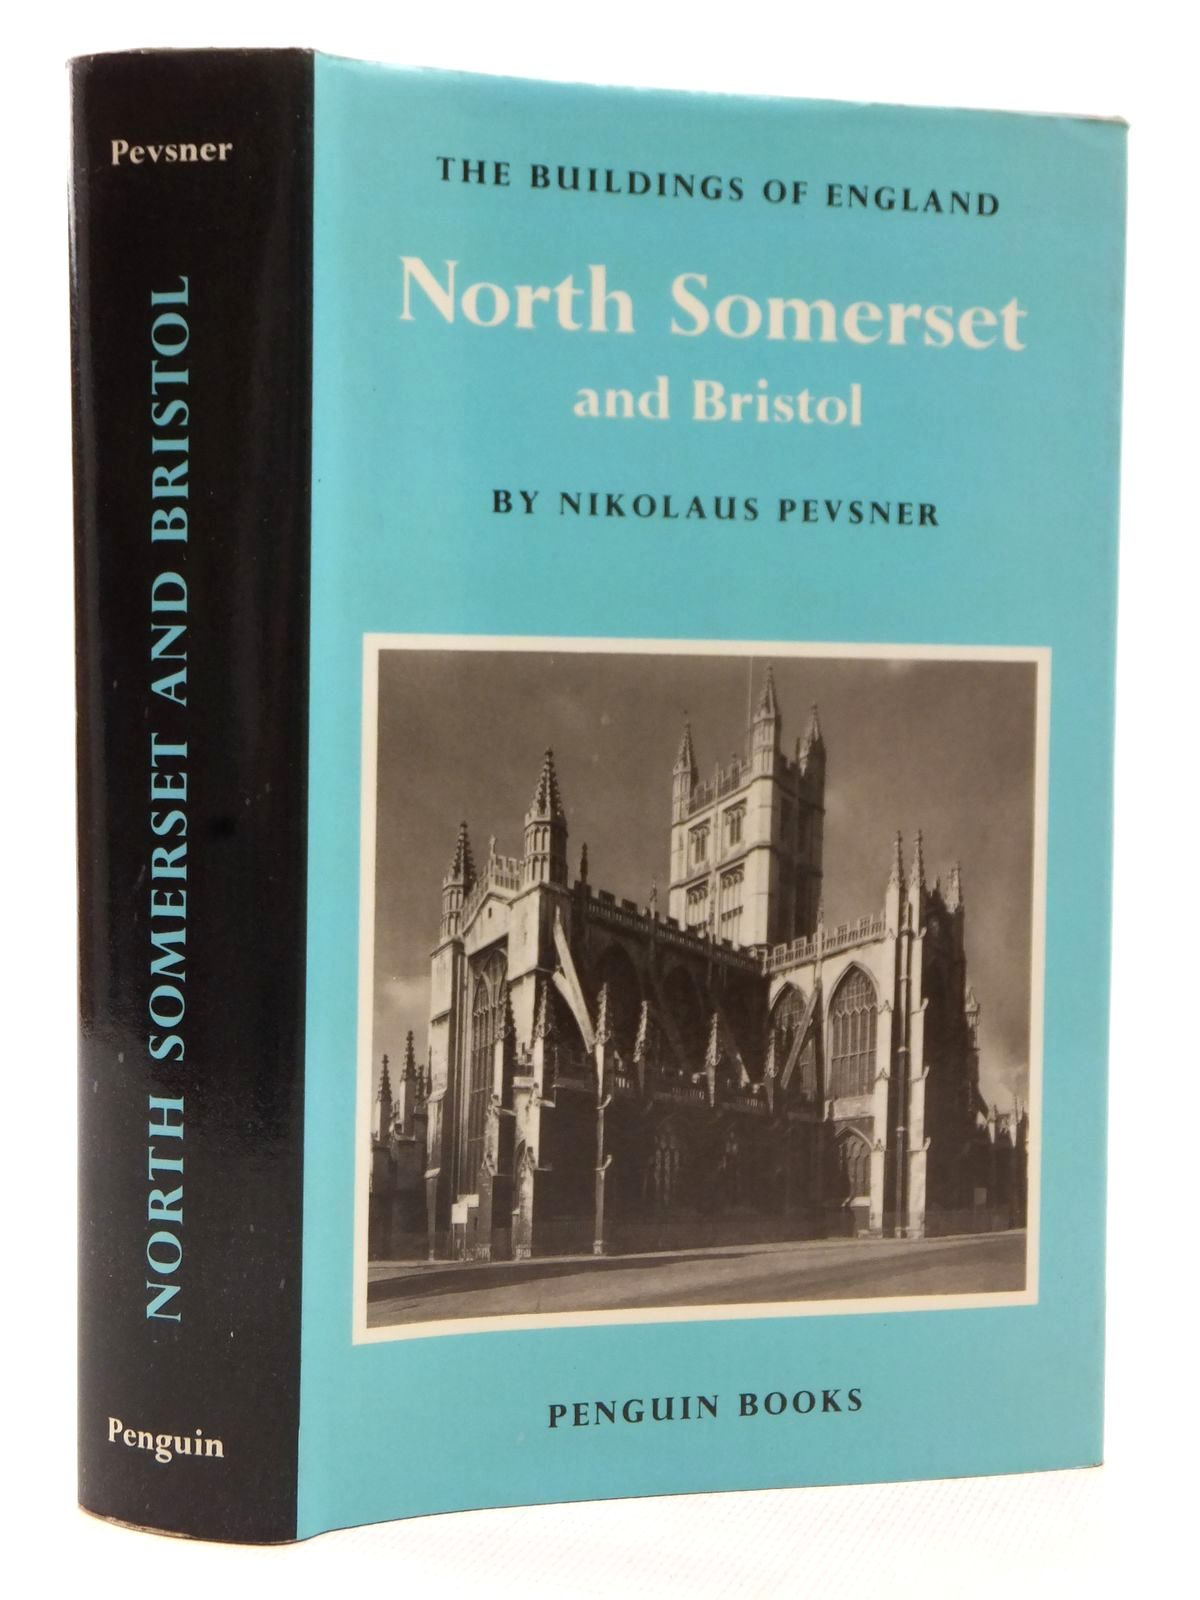 Photo of NORTH SOMERSET AND BRISTOL (BUILDINGS OF ENGLAND) written by Pevsner, Nikolaus published by Penguin (STOCK CODE: 1609055)  for sale by Stella & Rose's Books